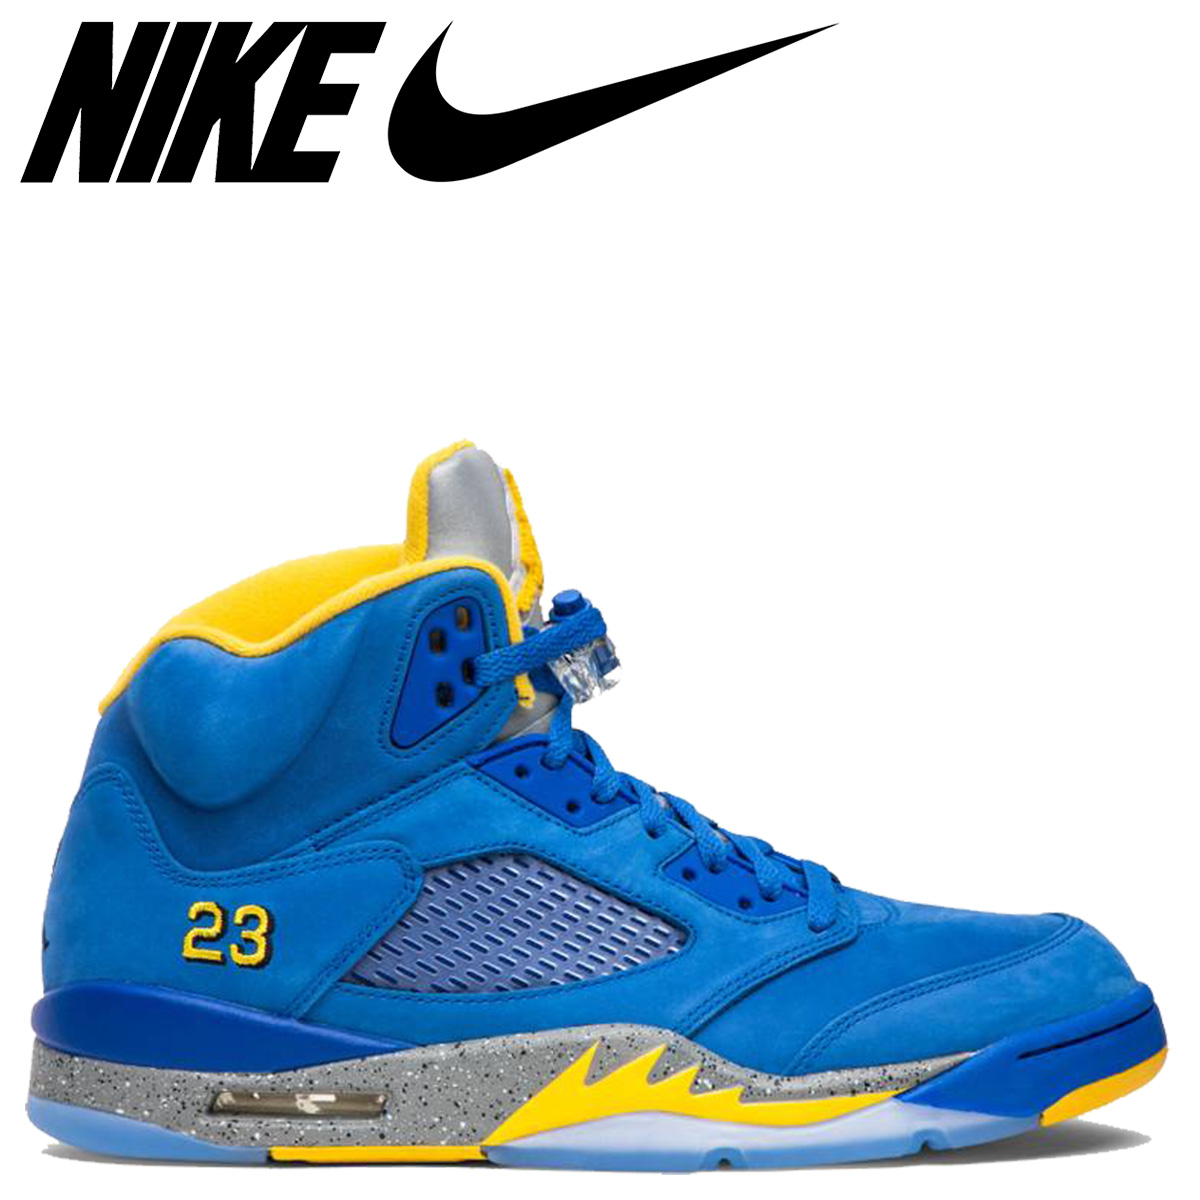 Whats up Sports  Nike NIKE Air Jordan 5 nostalgic sneakers men AIR JORDAN 5  RETRO JSP LANEY blue CD2720-400  2 20 Shinnyu load   75e8e4f1b